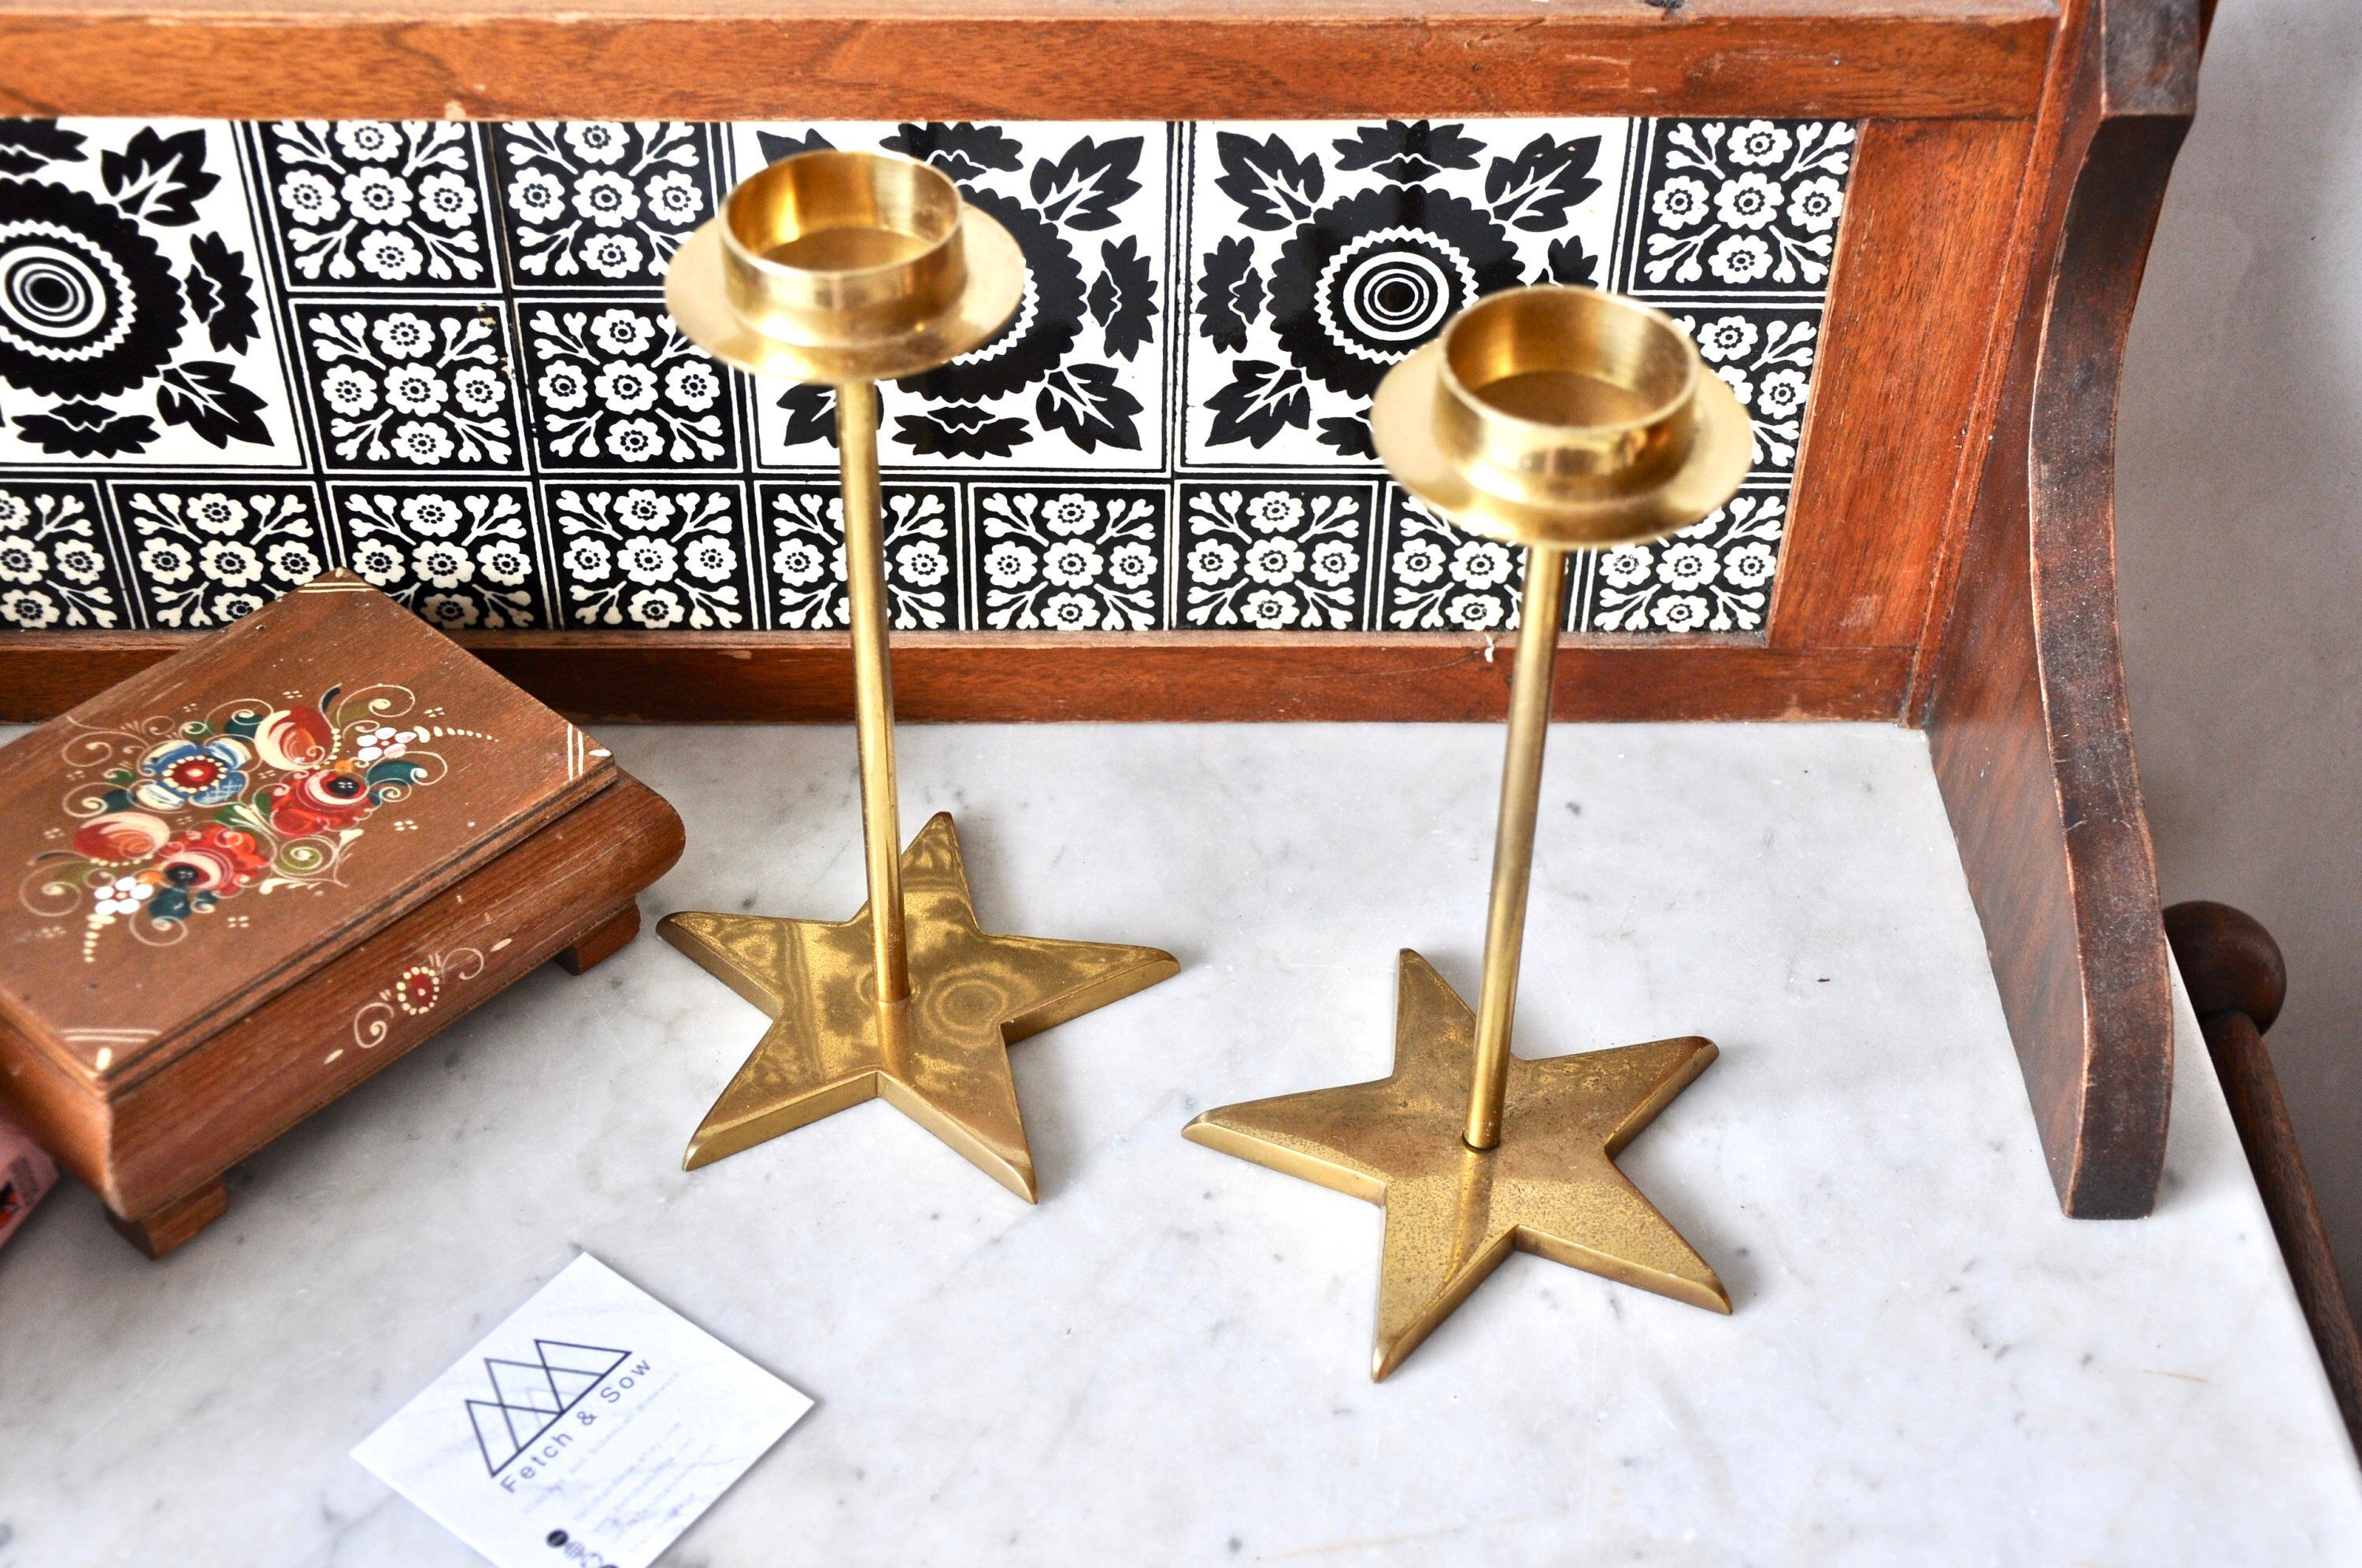 Pair of vintage mid century modern brass candle holders with star